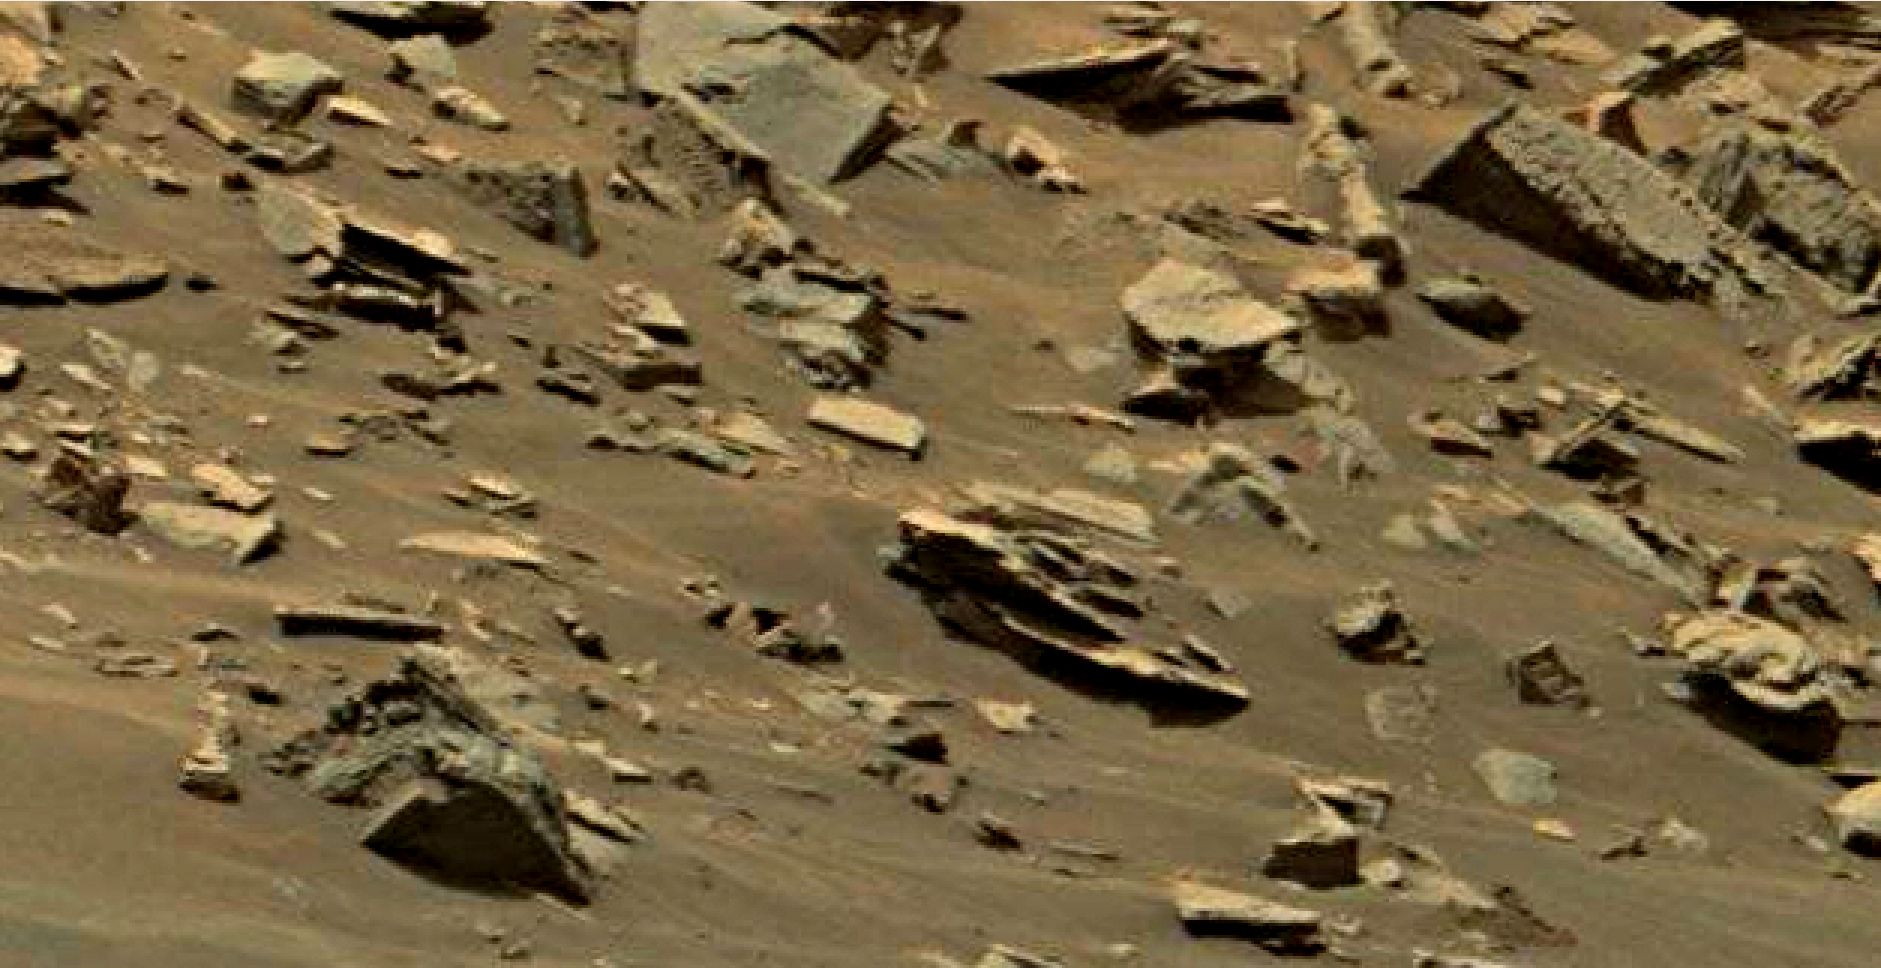 mars sol 1447 anomaly artifacts 4 - was life on mars